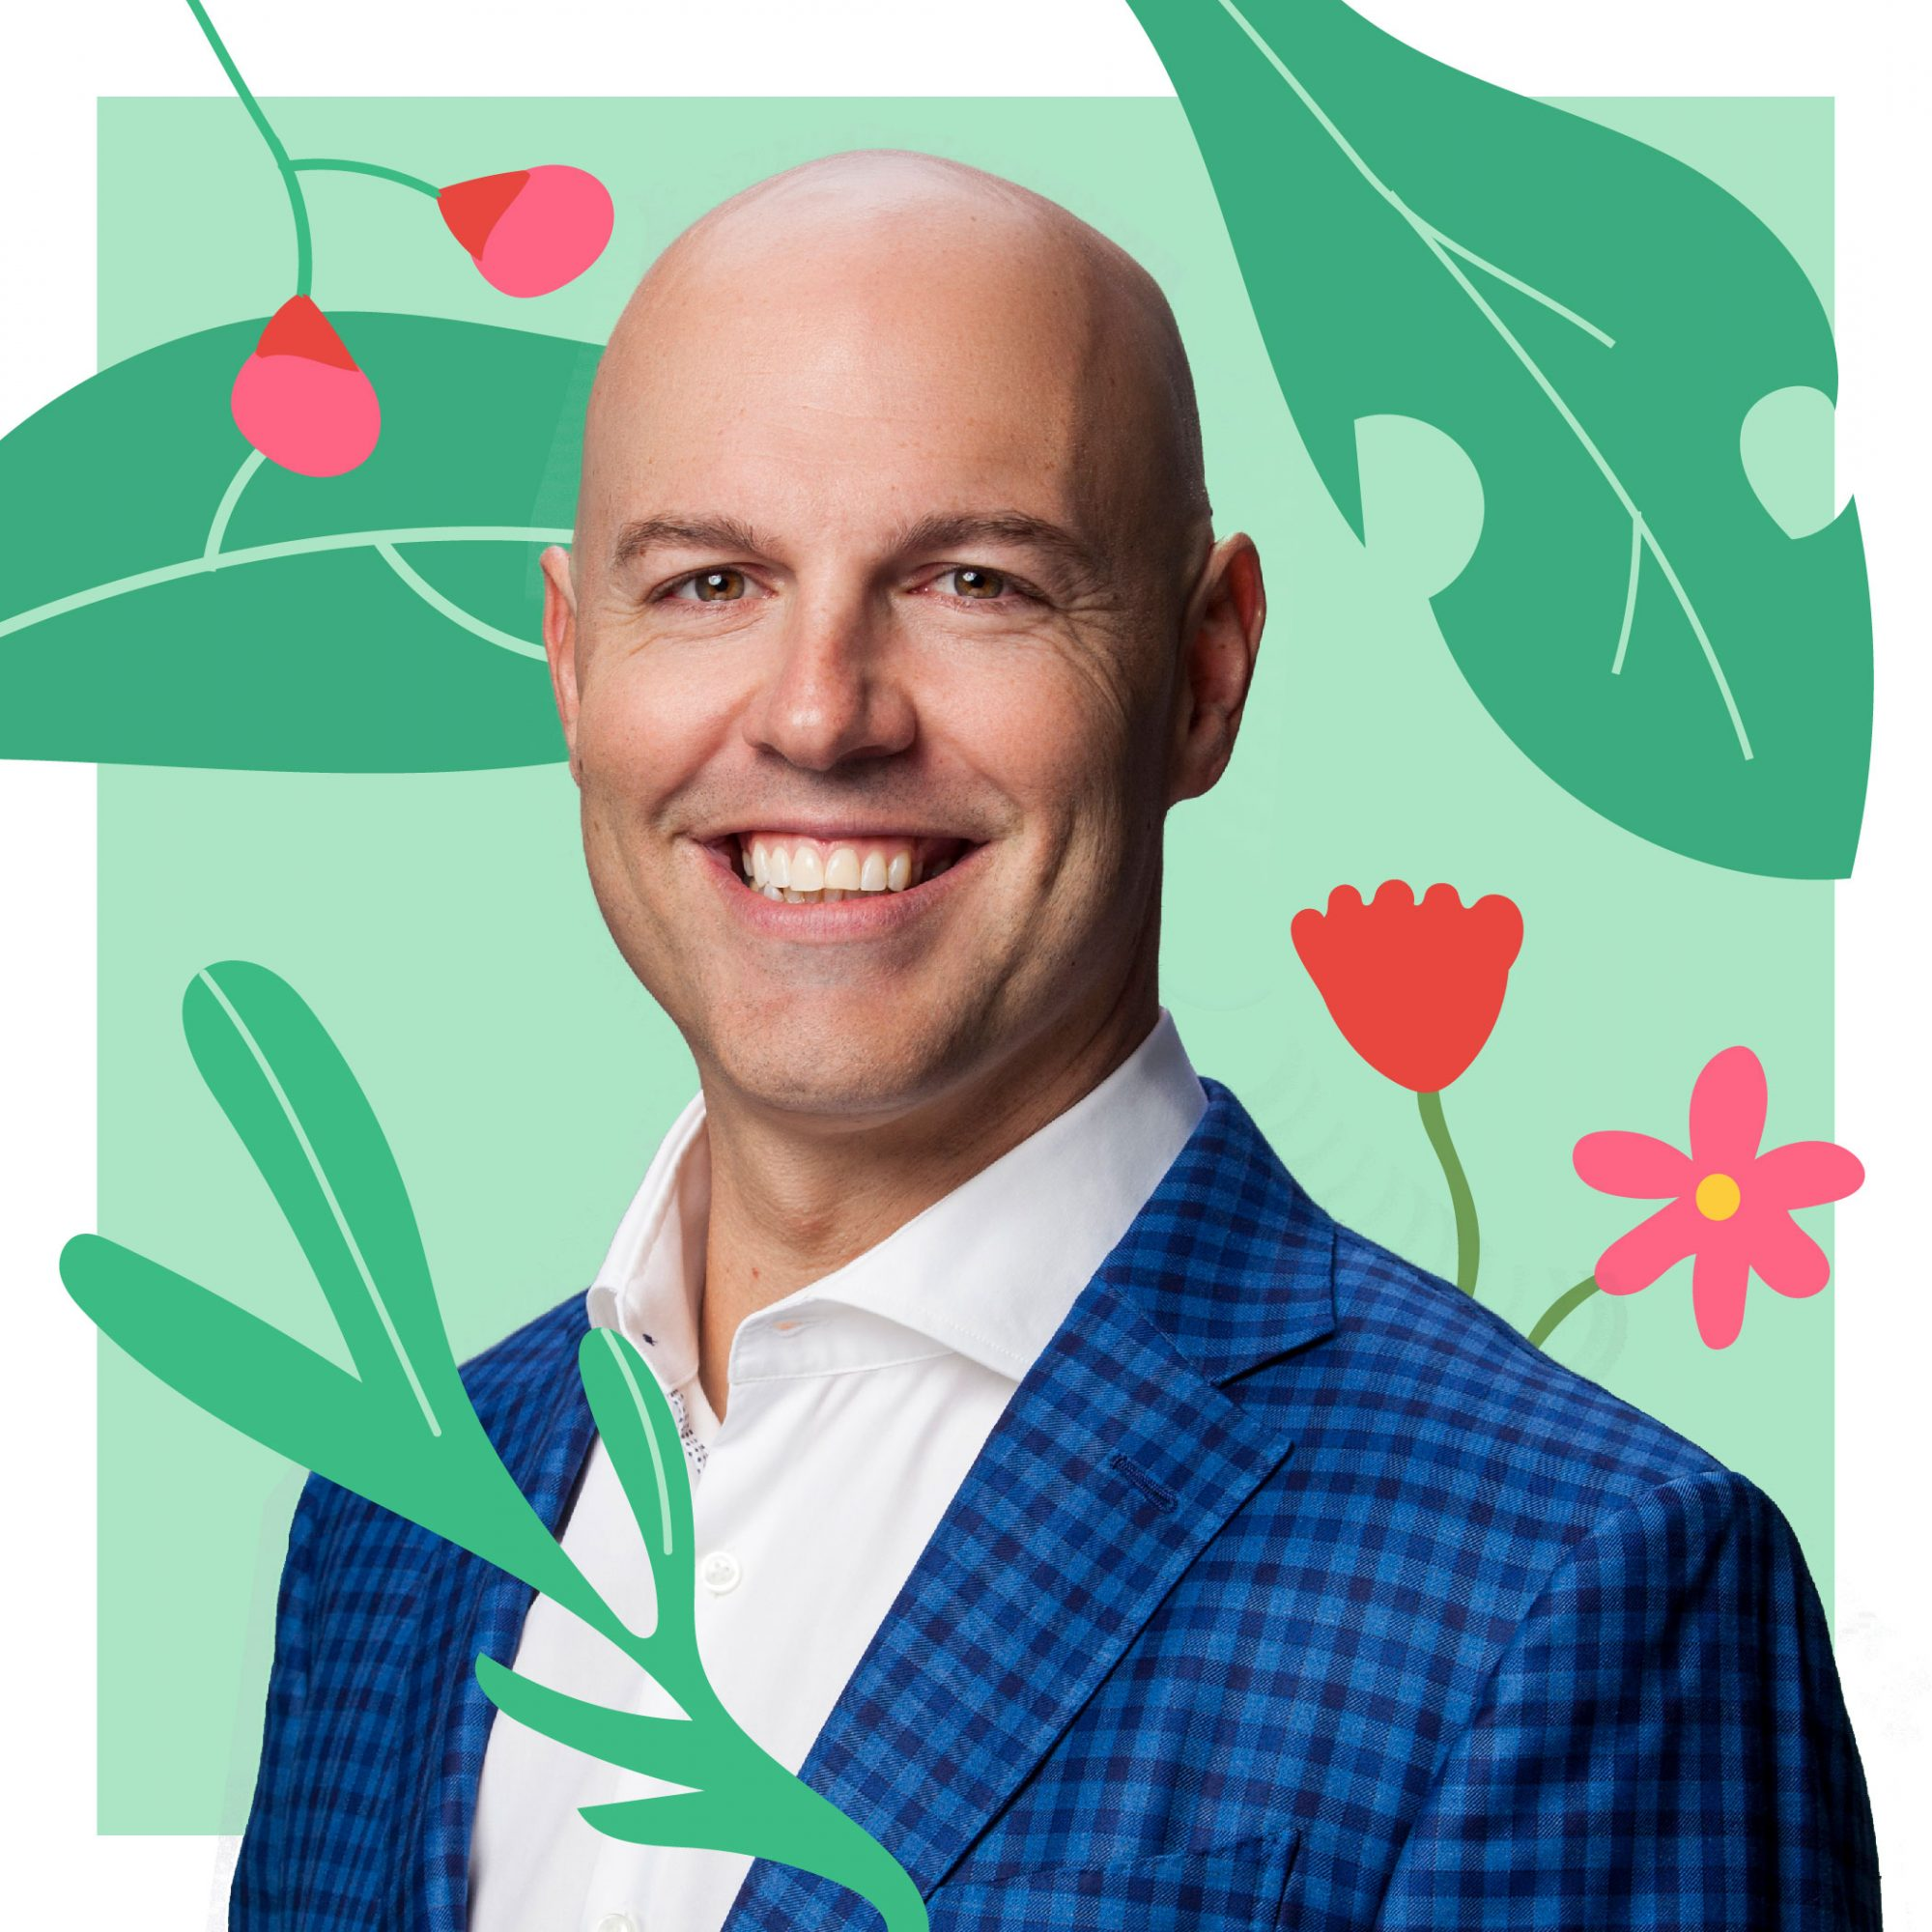 Real Simple Celebrities Who Practice Mindfulness: Dave Long